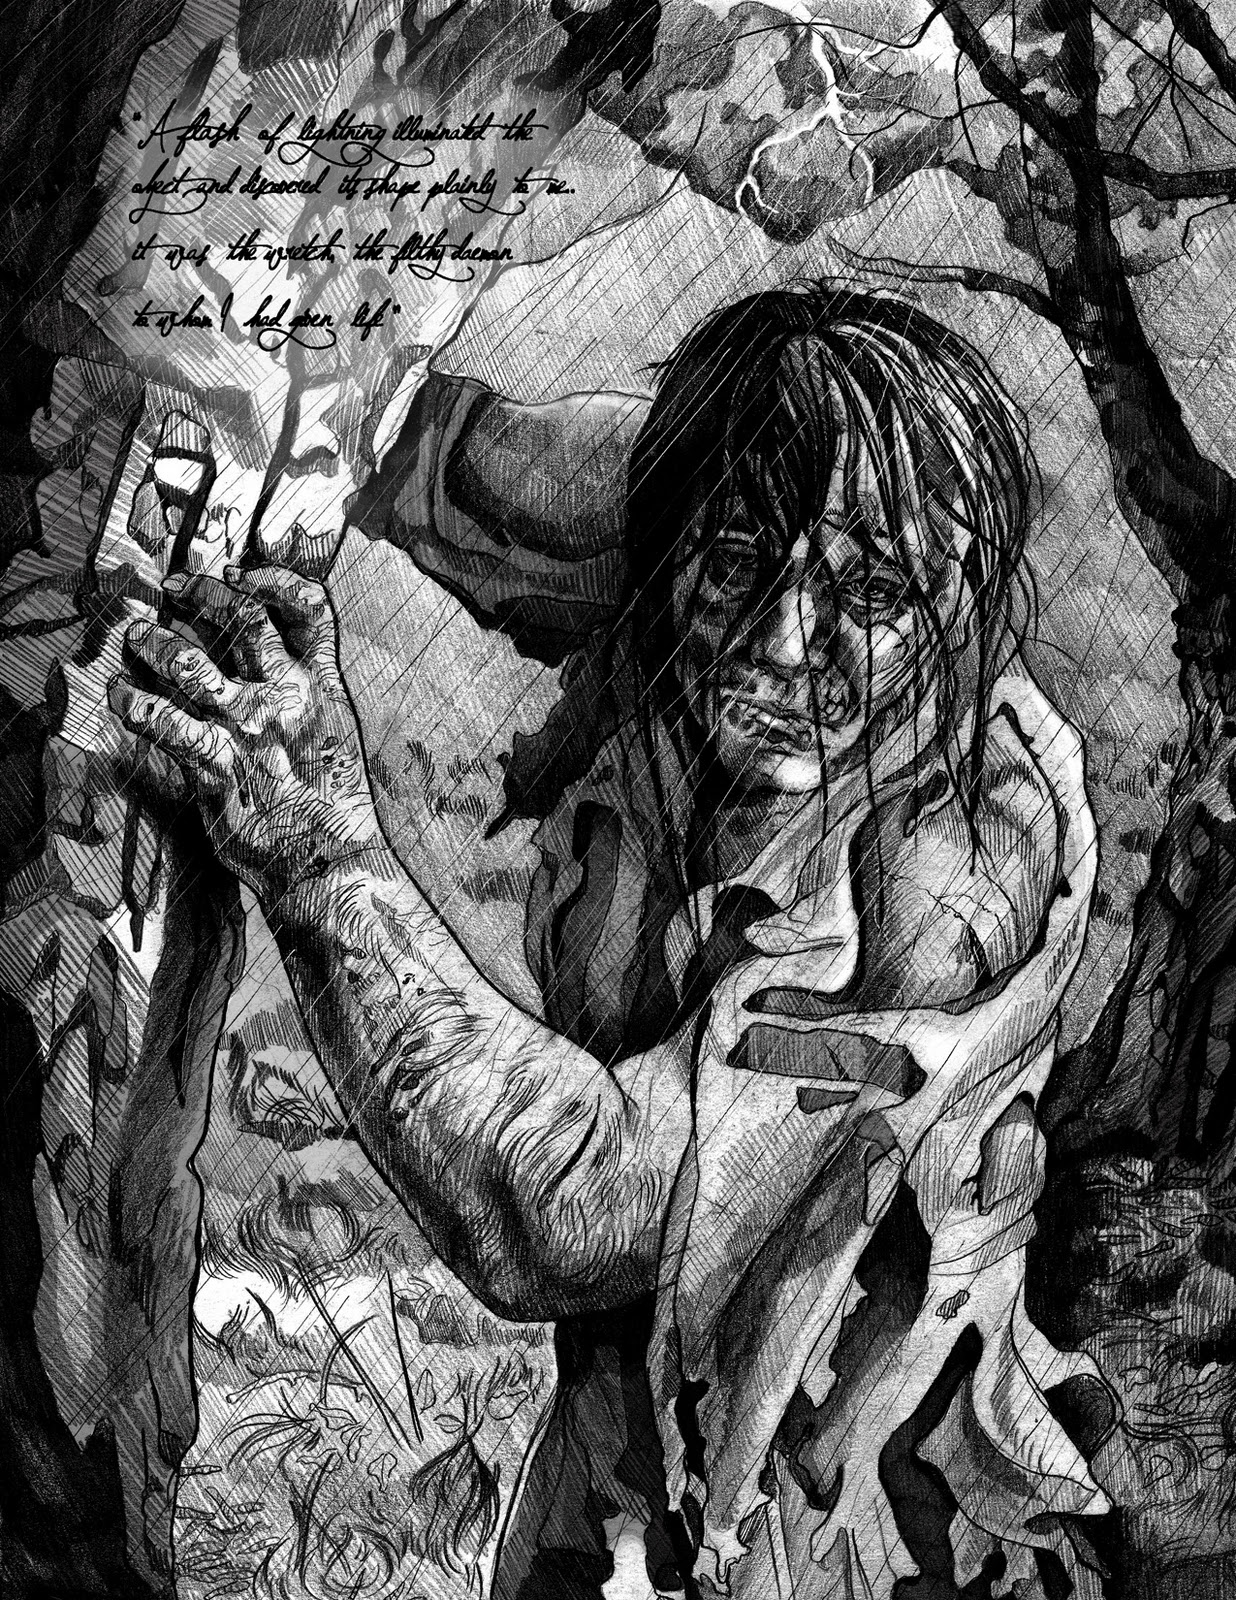 frankenstein and the definition of human However, frankenstein puts a human persona on the definition of monstrous, we see the monster yearning to be human he learns language and craves love, and conversely frankenstein as being monstrous his neglect of his duties, family and friends to the point of destruction of them all.